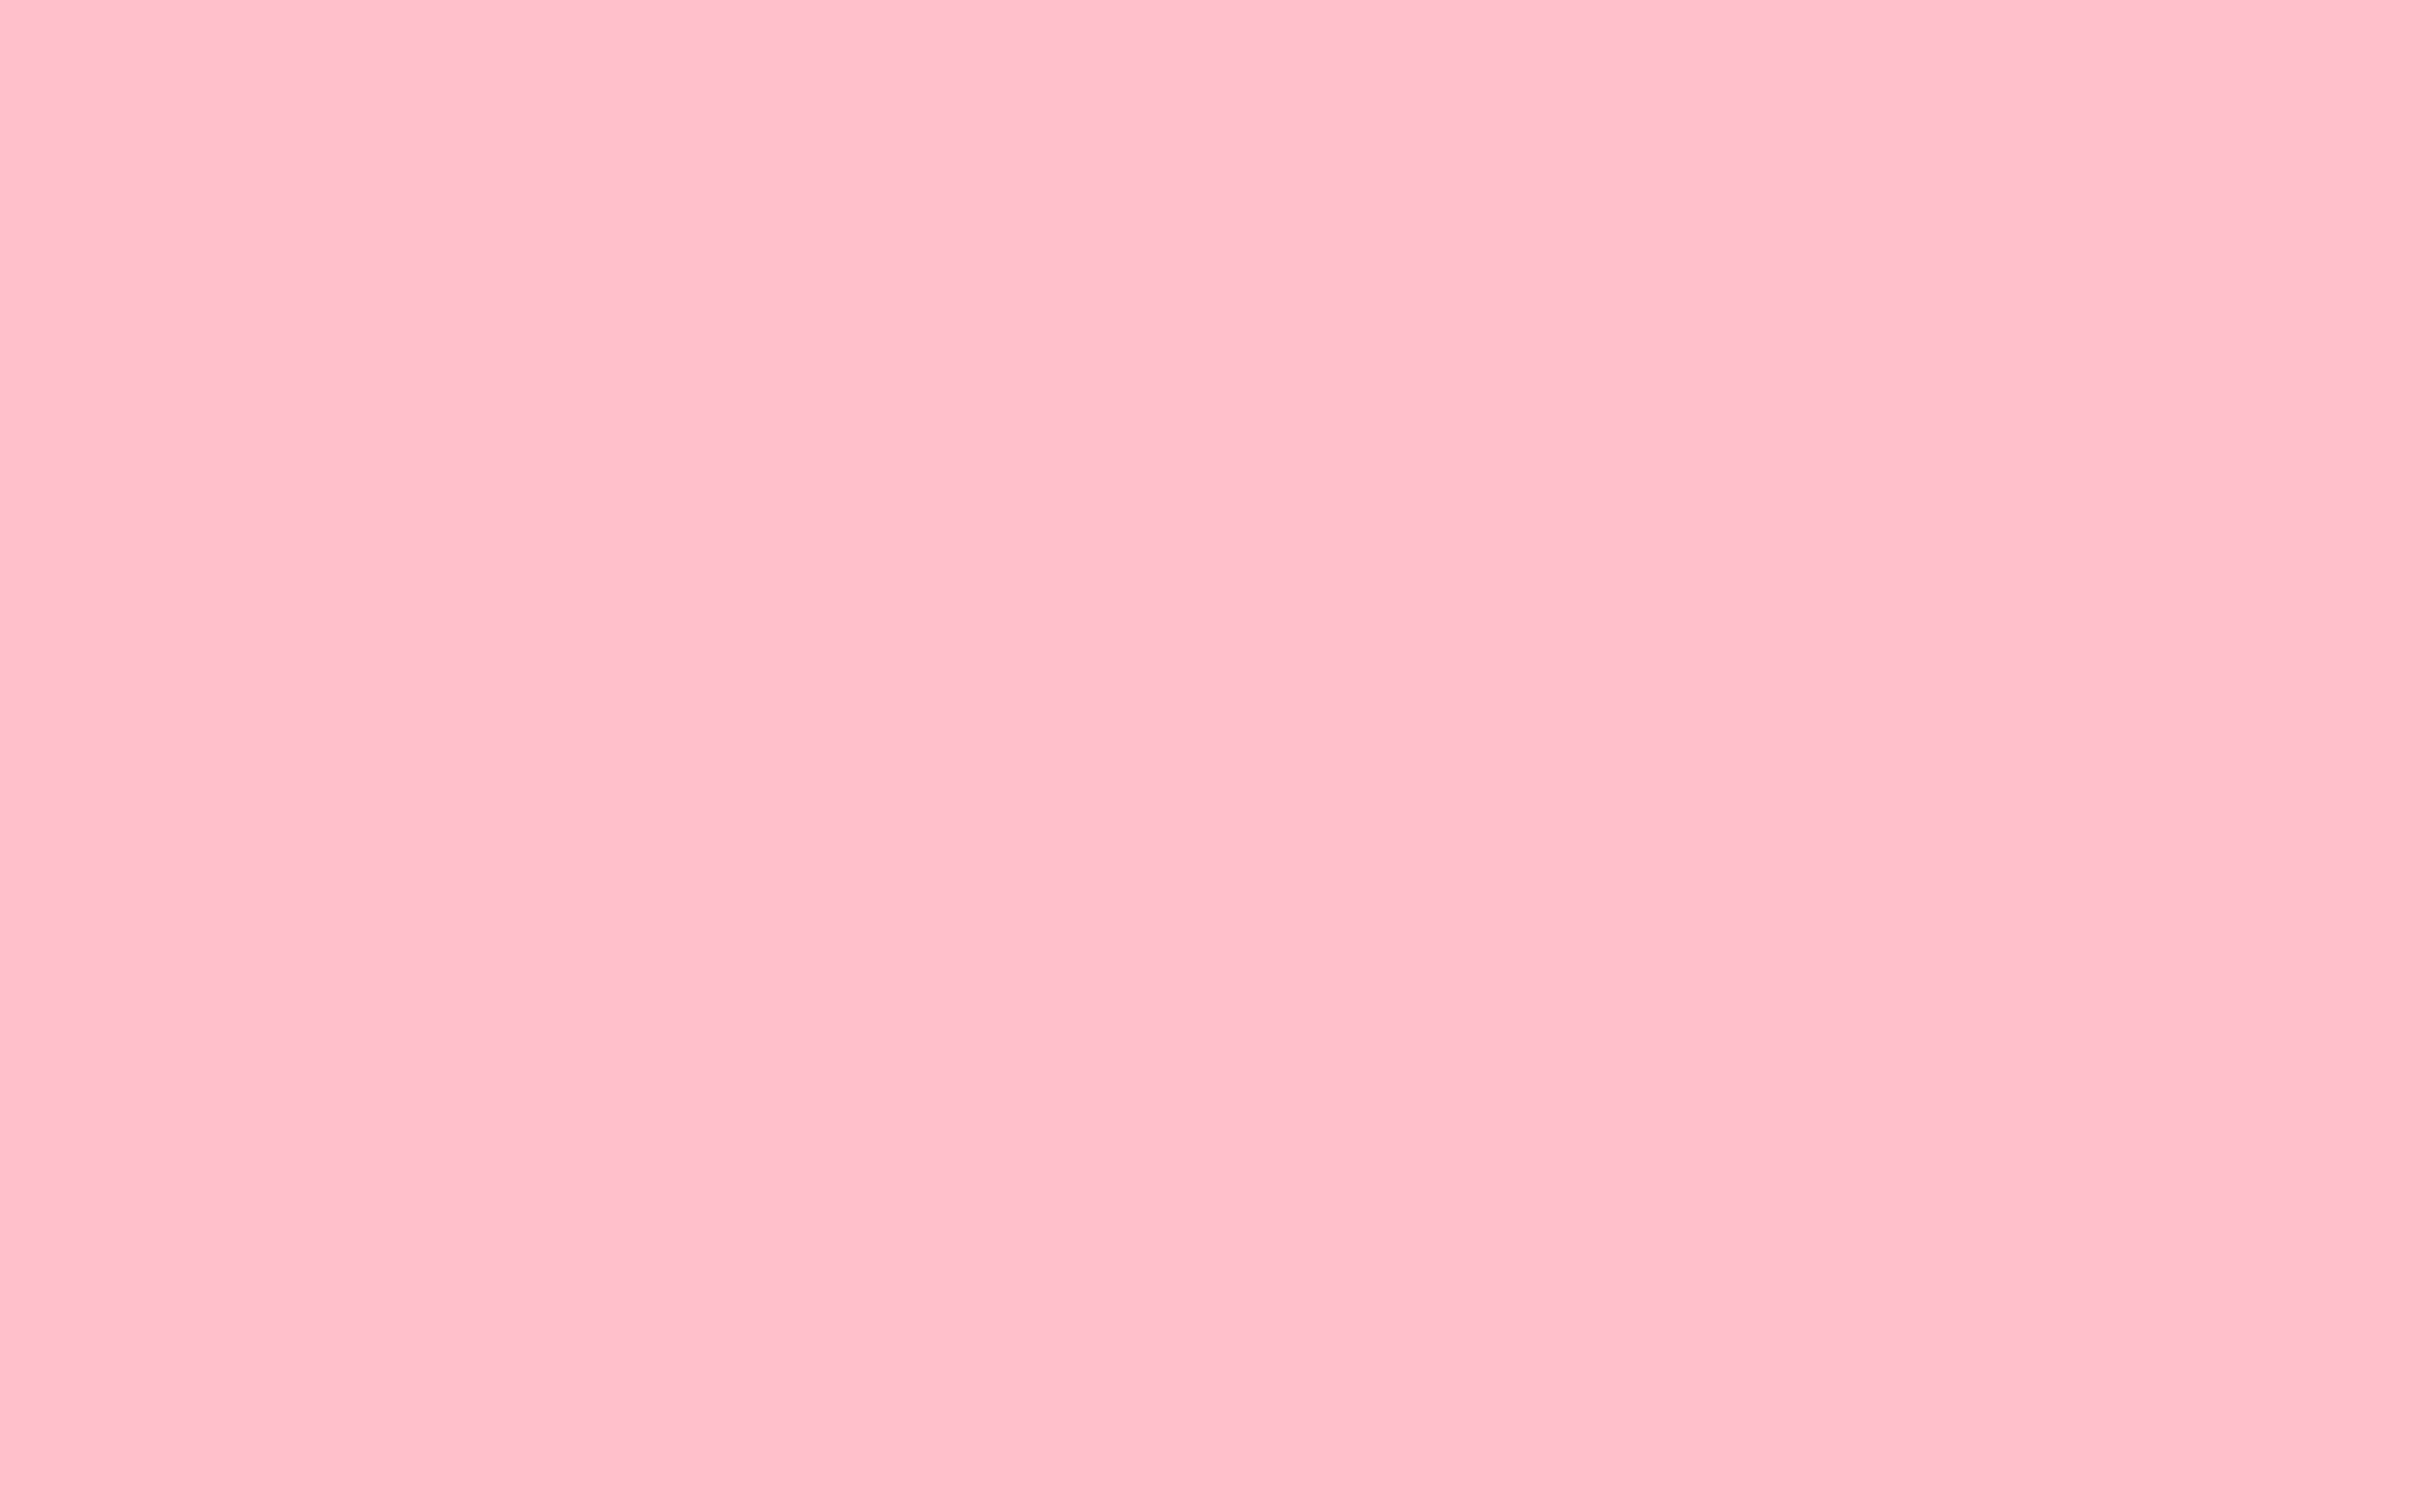 2560x1600 pink solid color background